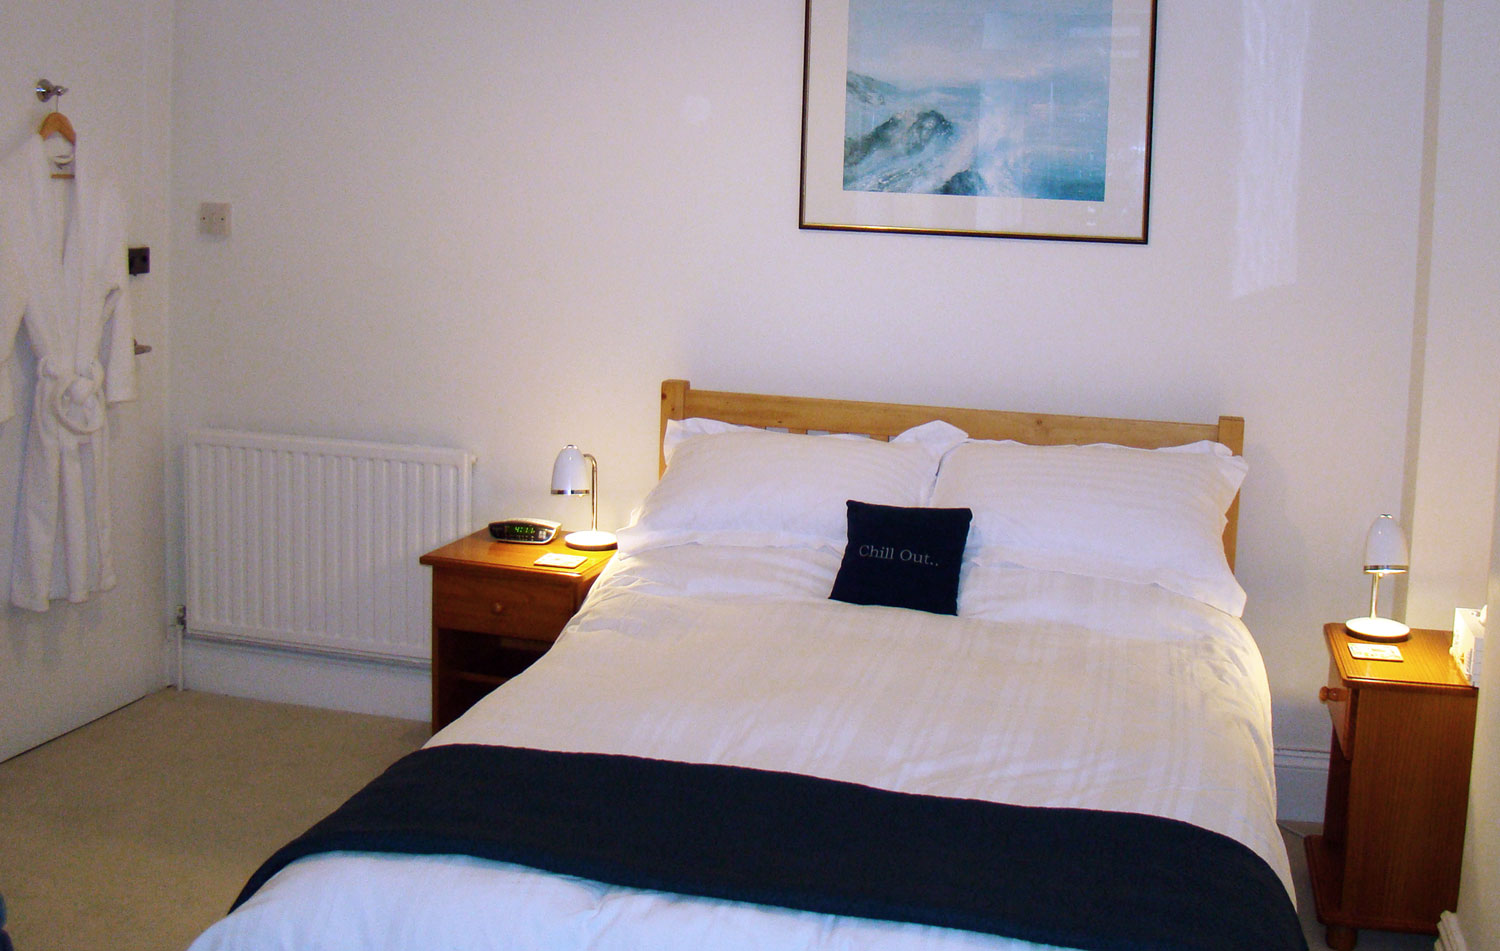 The Standard Double Room at Surf Haven Bed & Breakfast, Bude, Cornwall